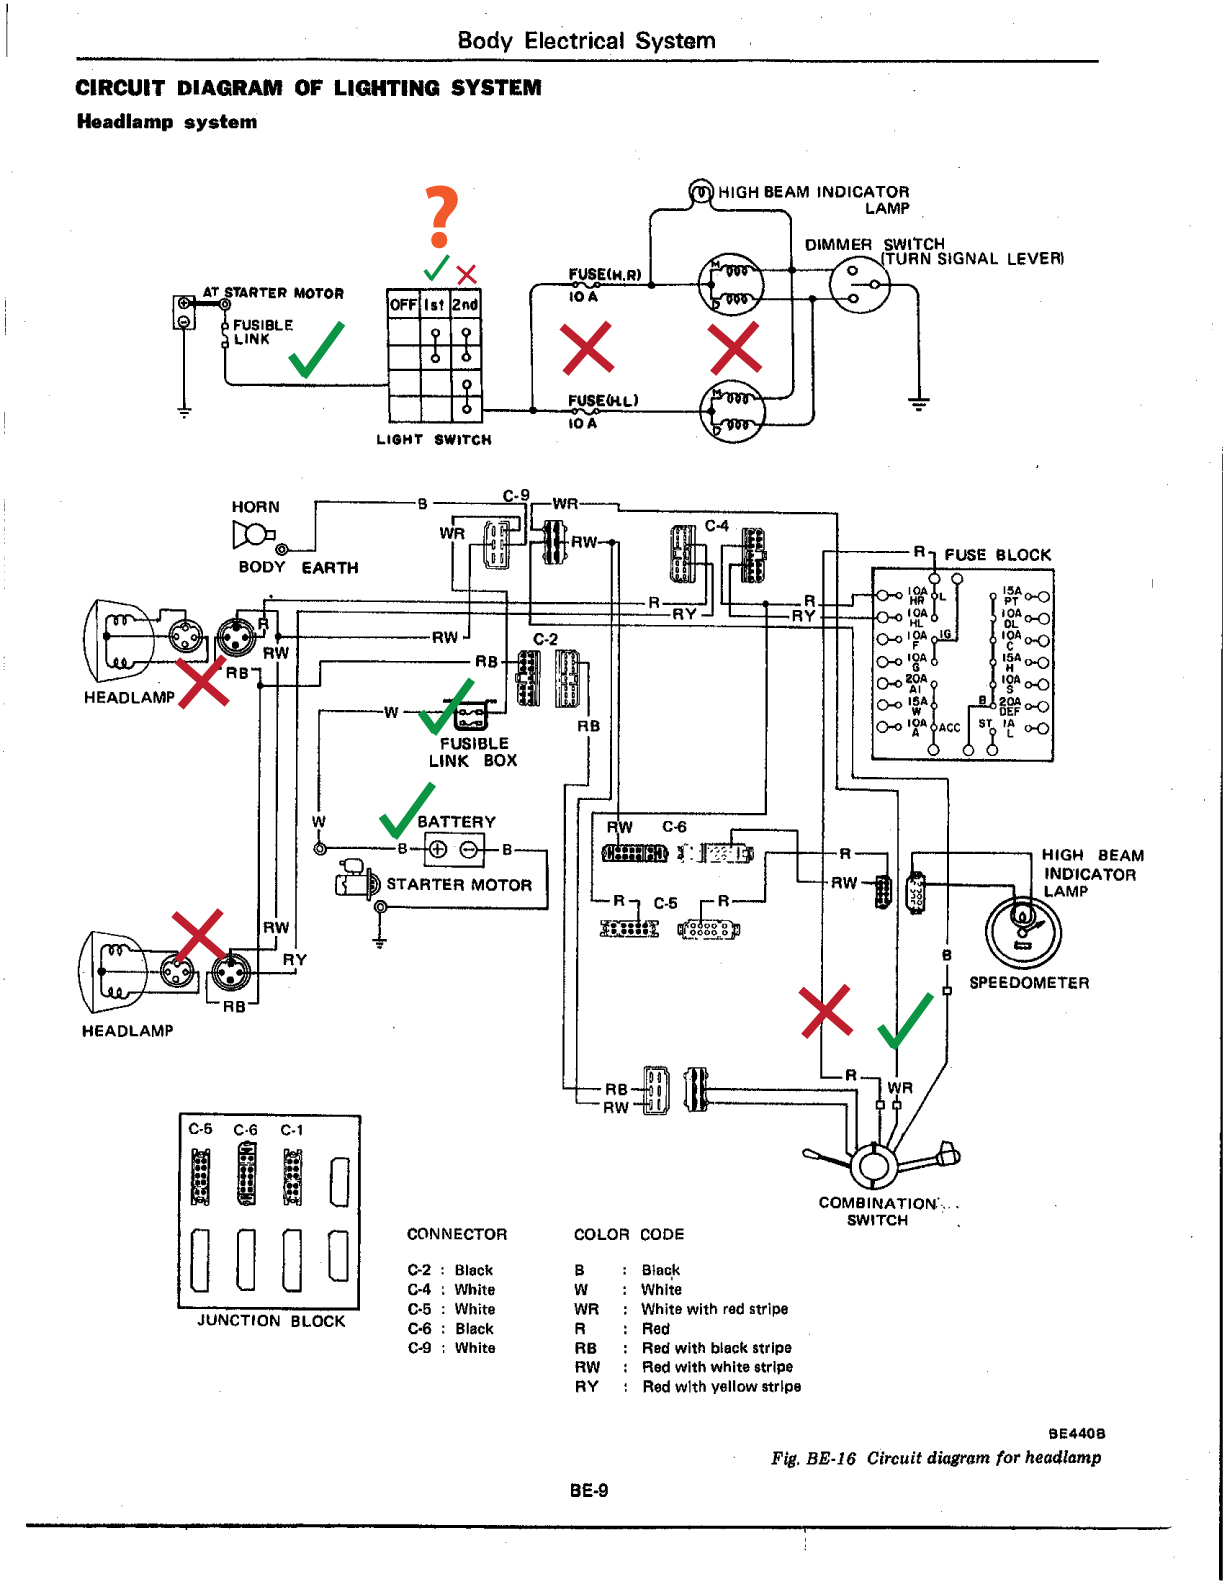 daily datsun 280z fsm be 9 goodbad 280z wiring diagram 280z tachometer wiring \u2022 wiring diagrams j 1976 datsun 280z wiring diagram at gsmx.co